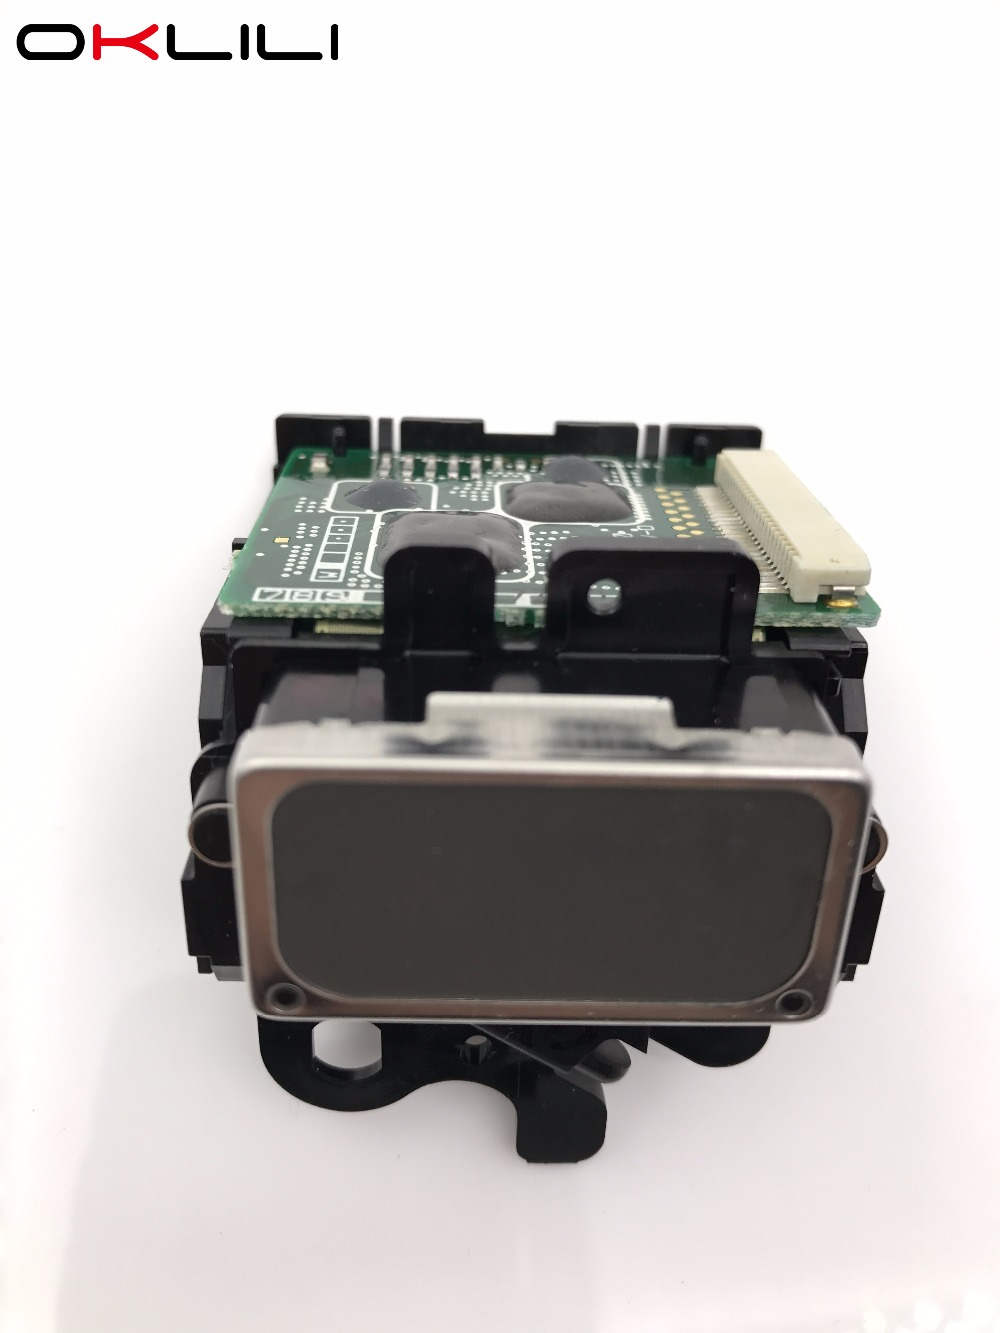 F055030 F055090 COLOR Printhead Printer Print Head for Epson DX2 Color 1520 1520K 3000 800 800N PRO 5000 7000 7500 9500 9000